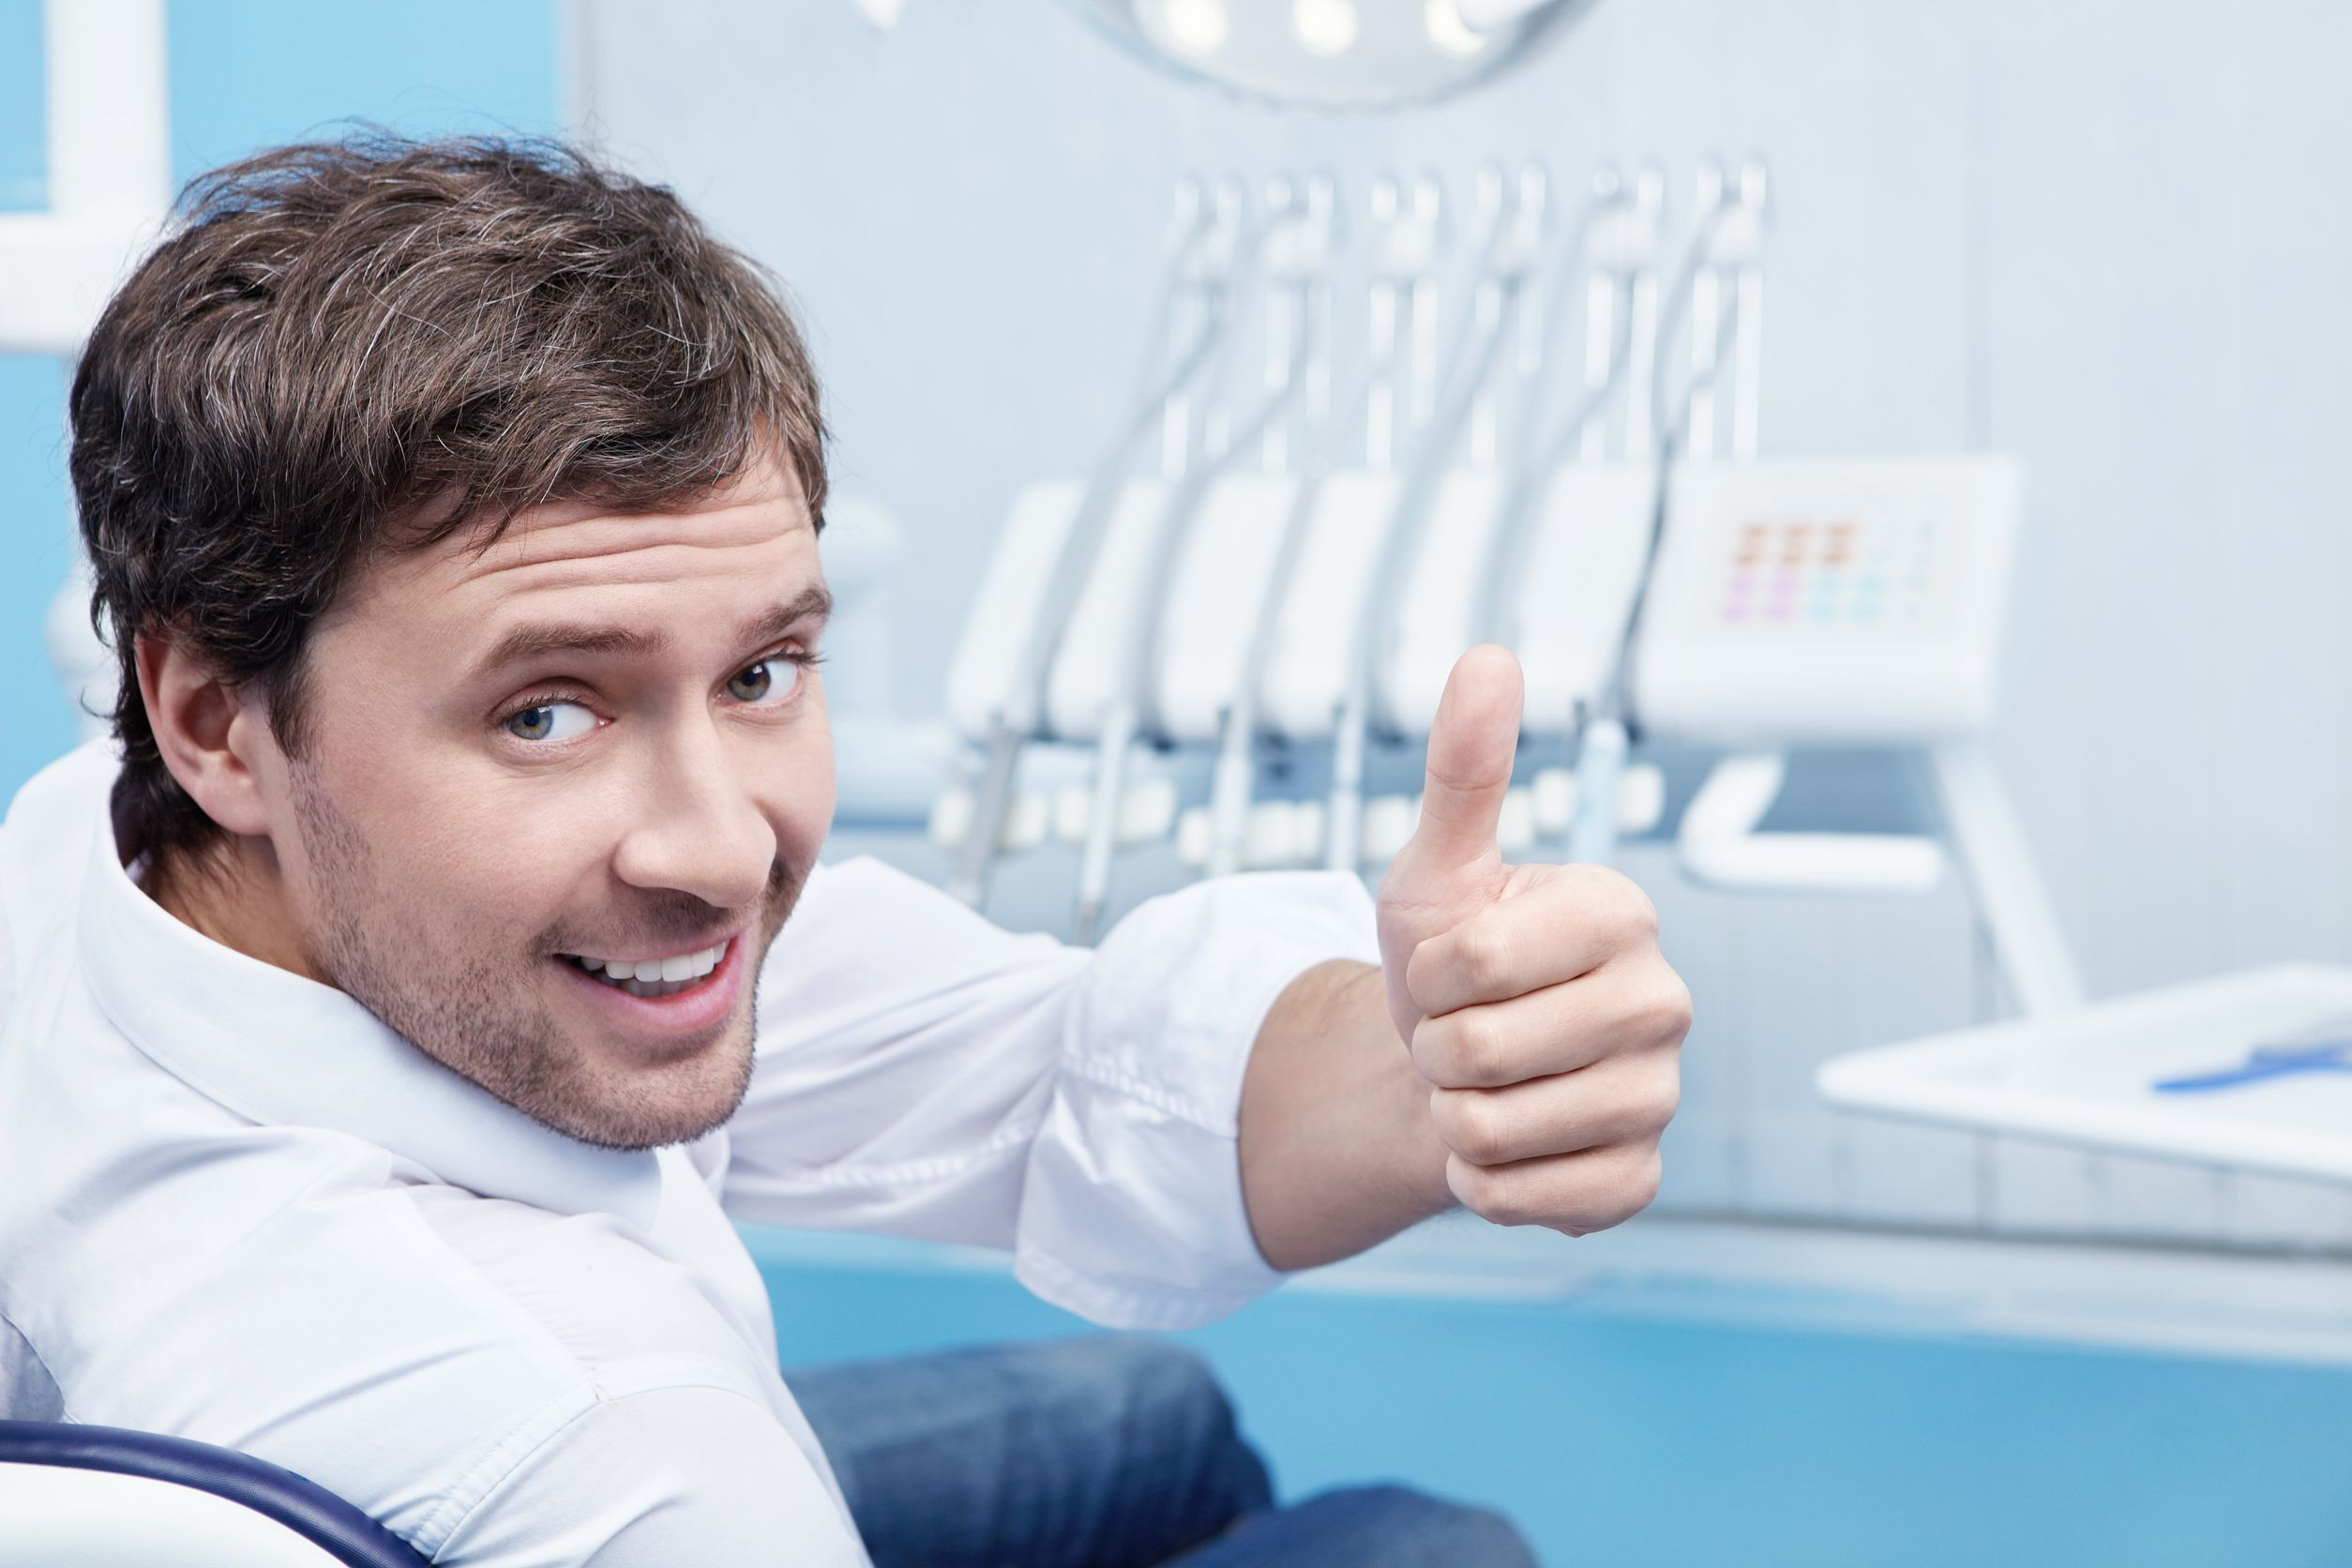 Where Can I Find A Plainview Sedation Dentist?